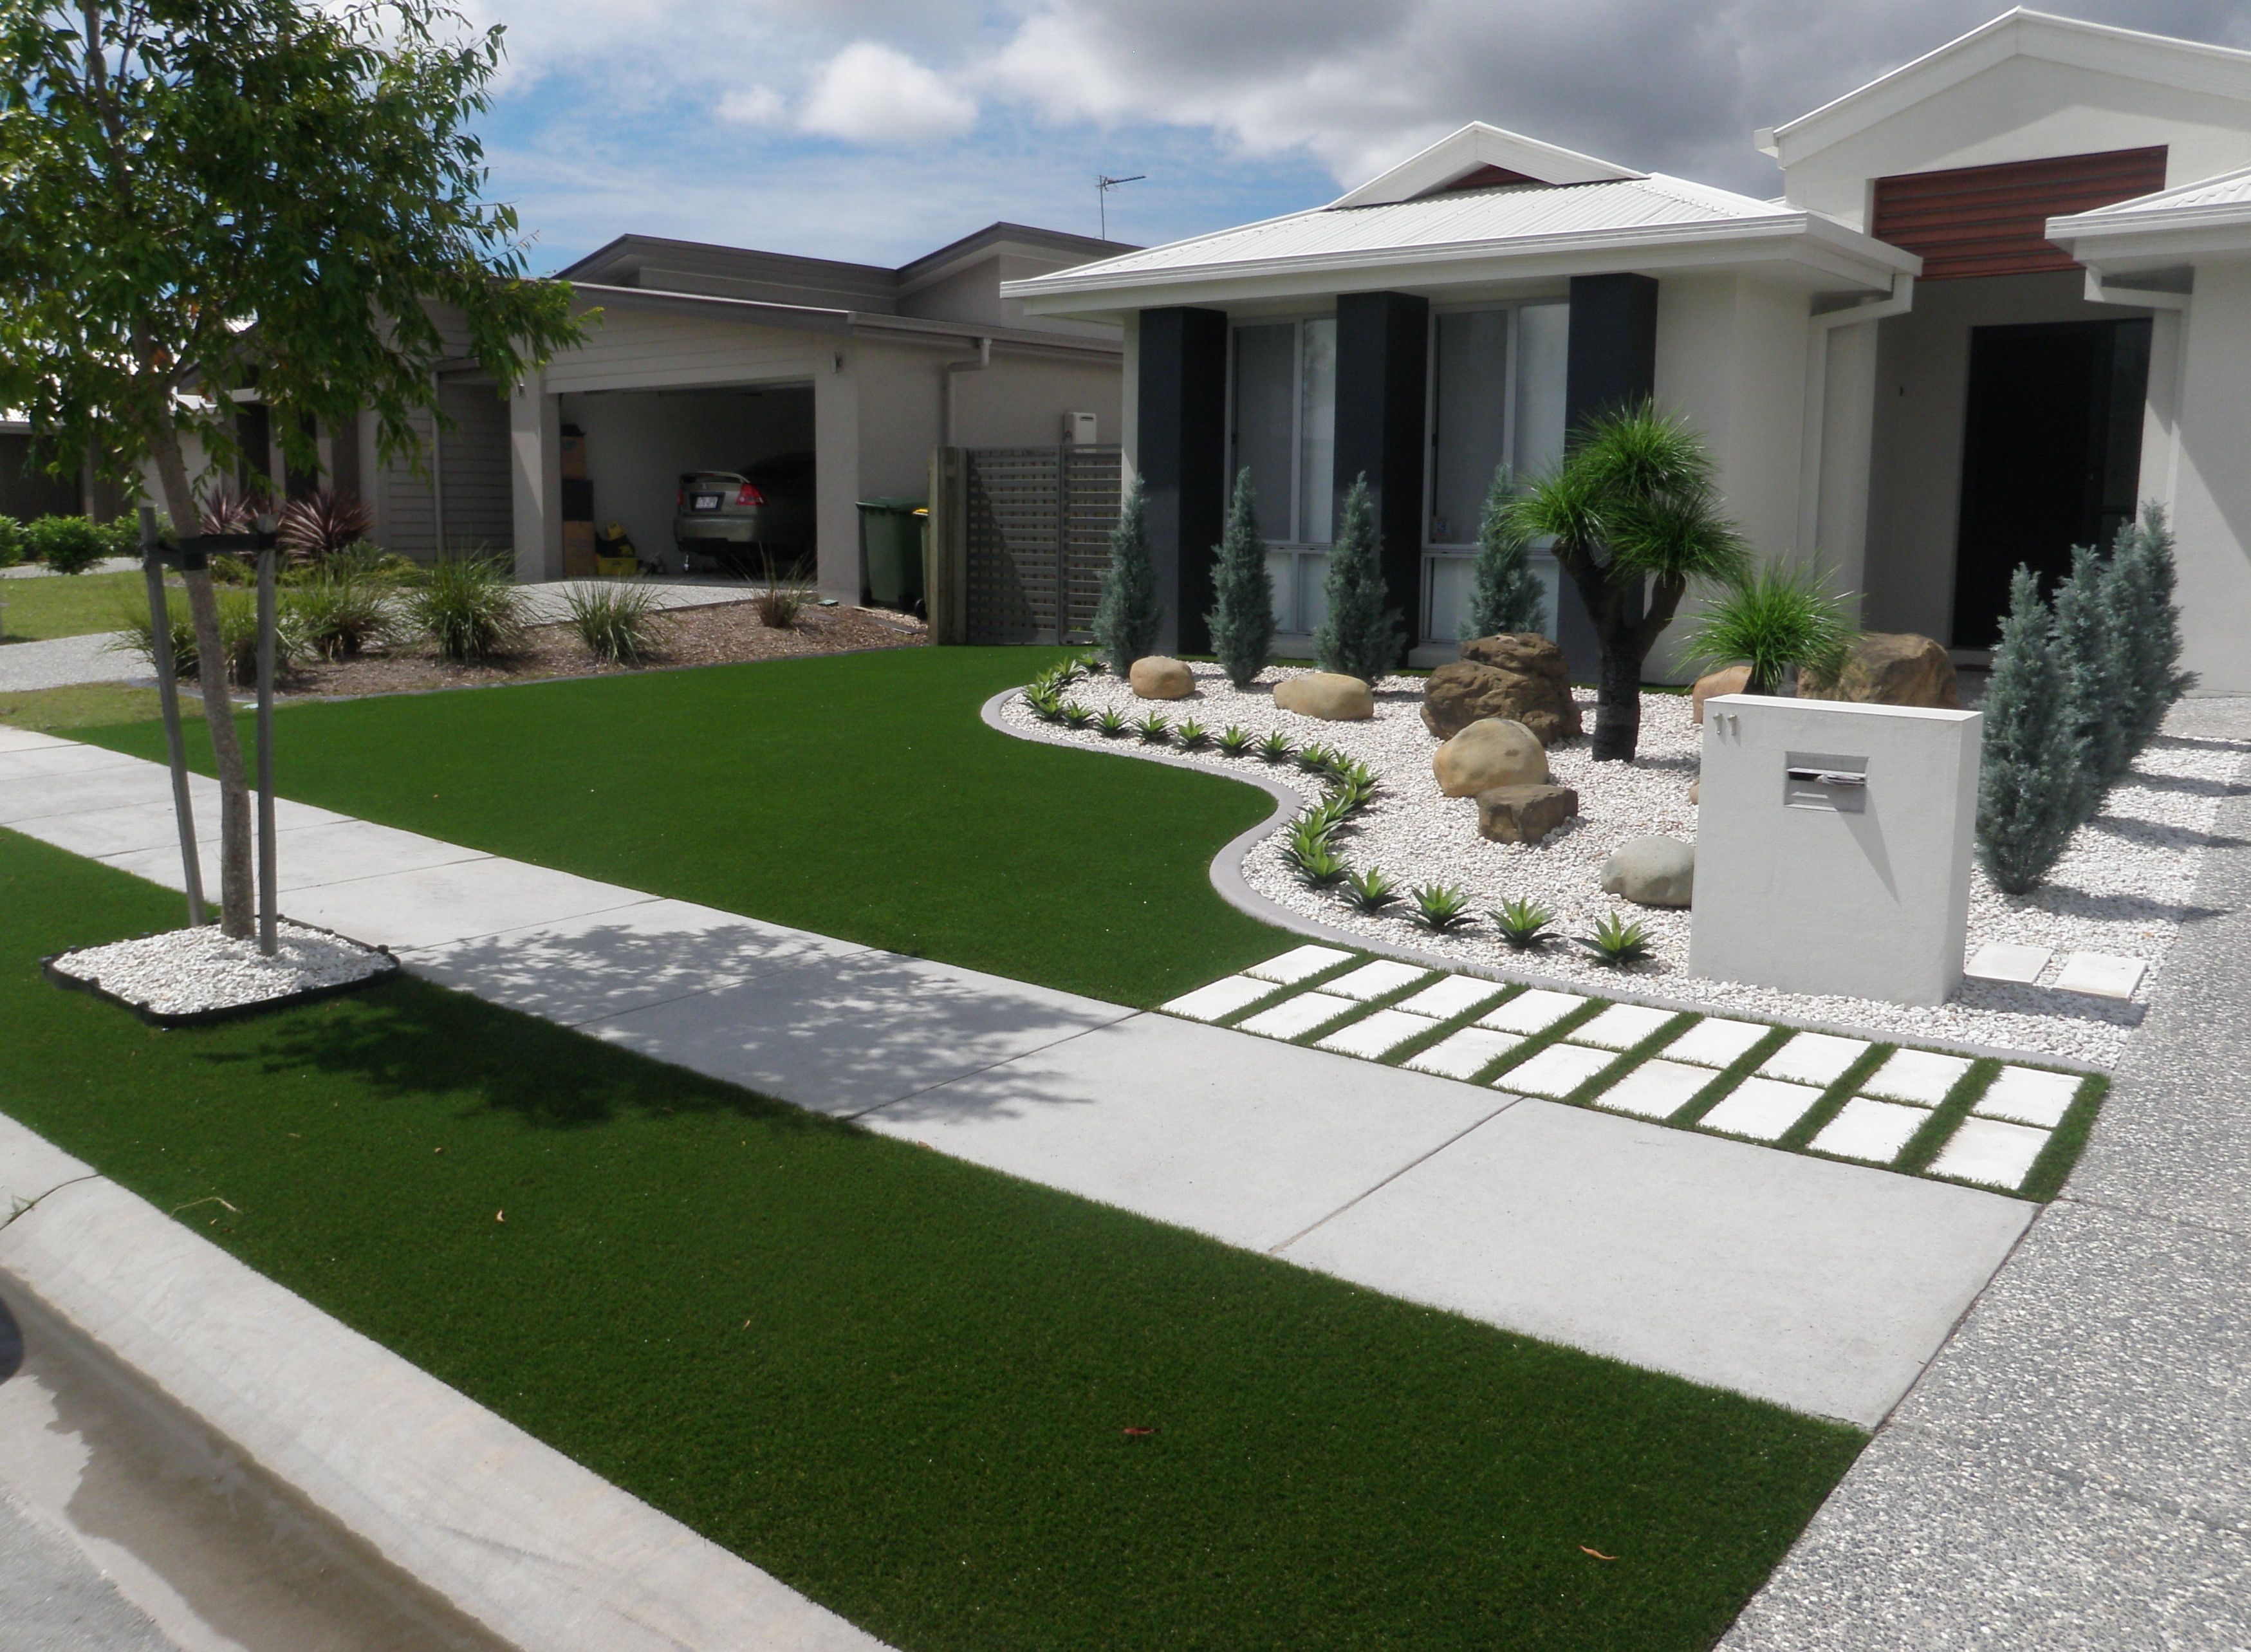 synthetic grass front yard designs LANDSCAPE YARDS SYNTHETIC TURF OUTDOOR LIVING DESIGN DREAM